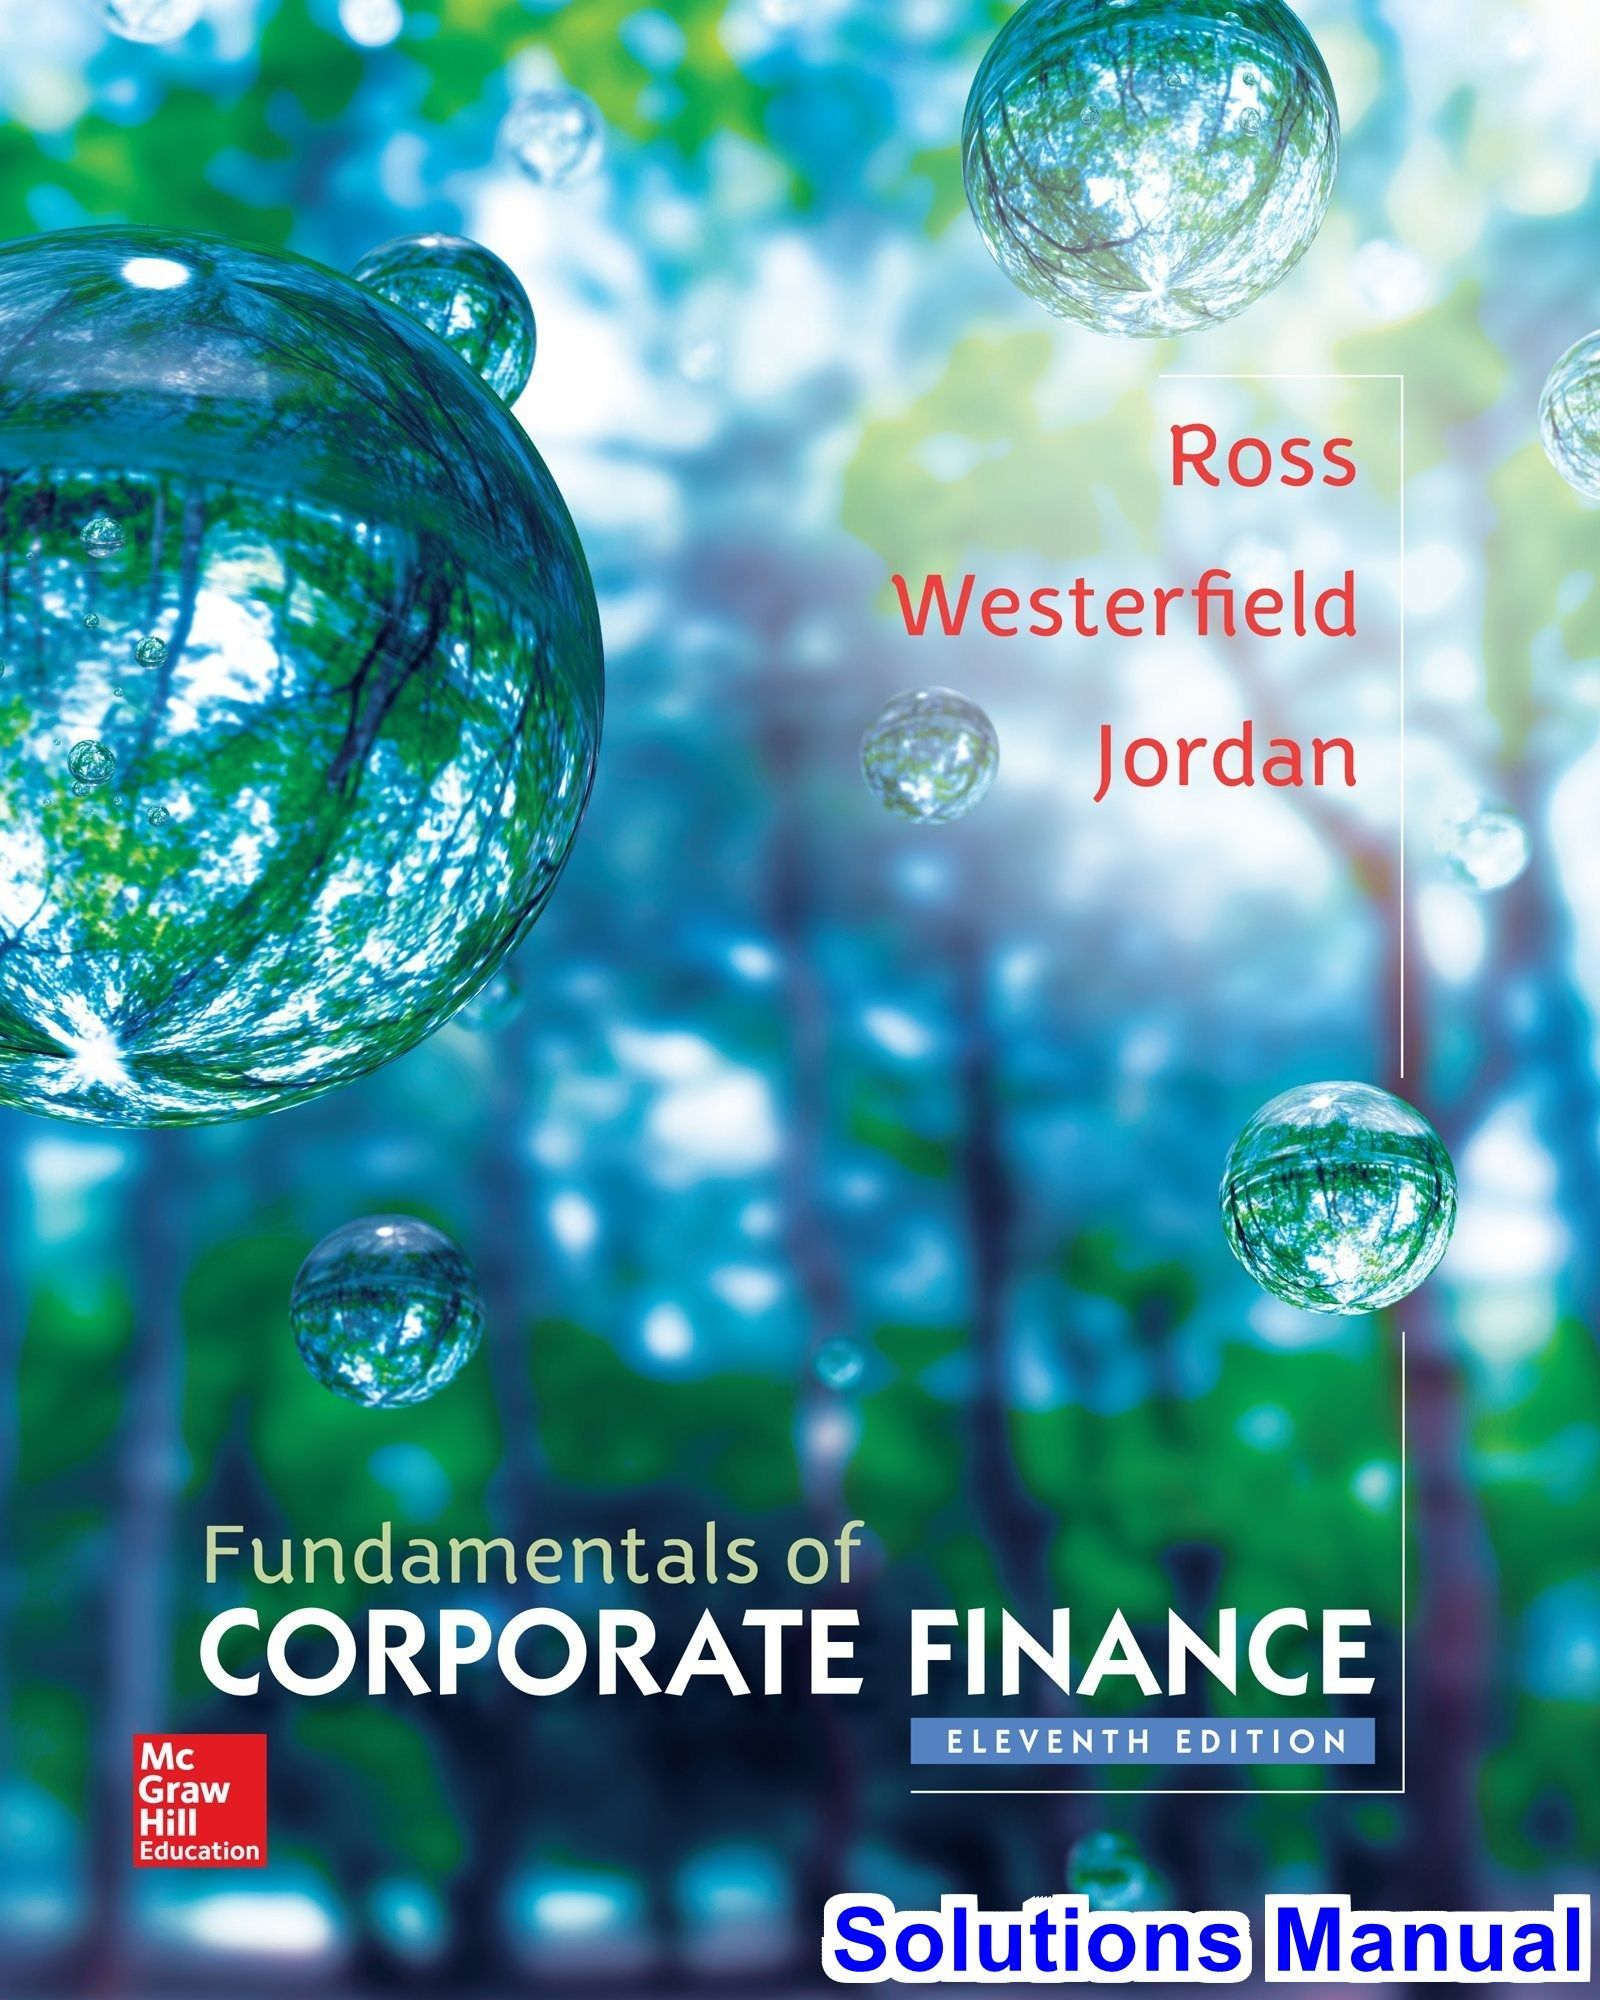 Fundamentals of corporate finance 11th edition ross solutions manual fundamentals of corporate finance 11th edition ross solutions manual test bank solutions manual fandeluxe Gallery